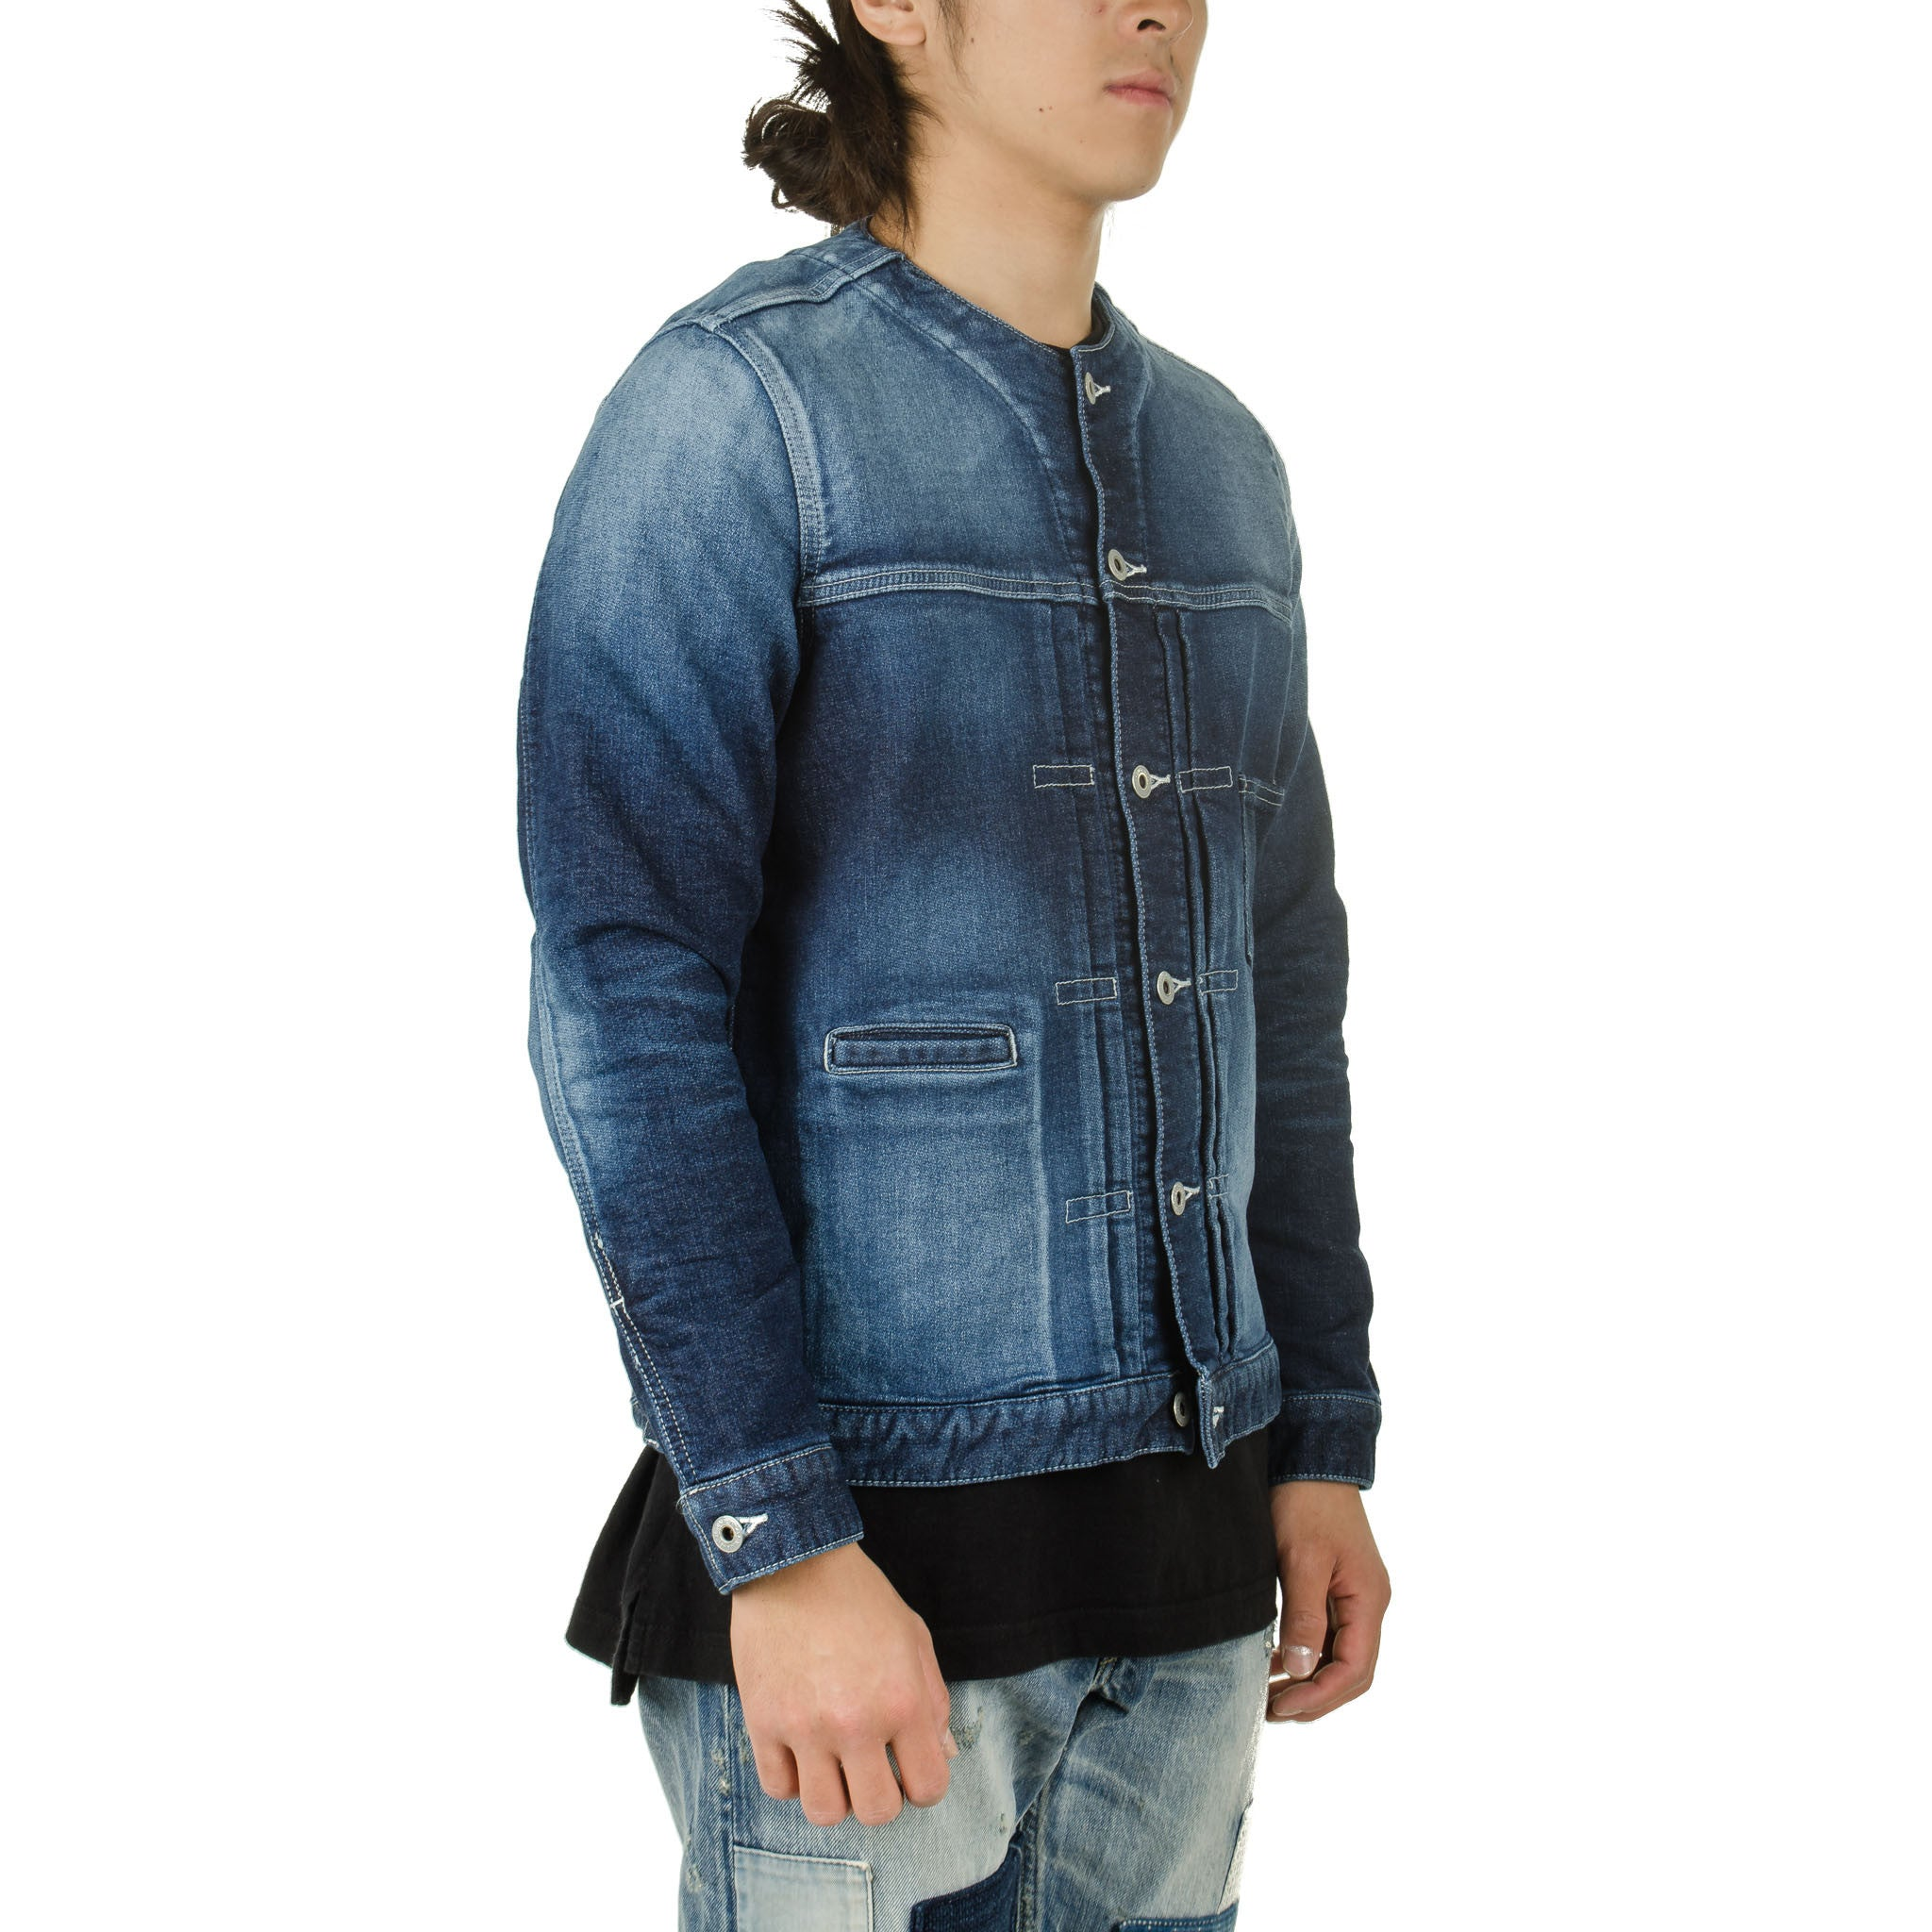 Collarless Denim Jacket 2YR Wash